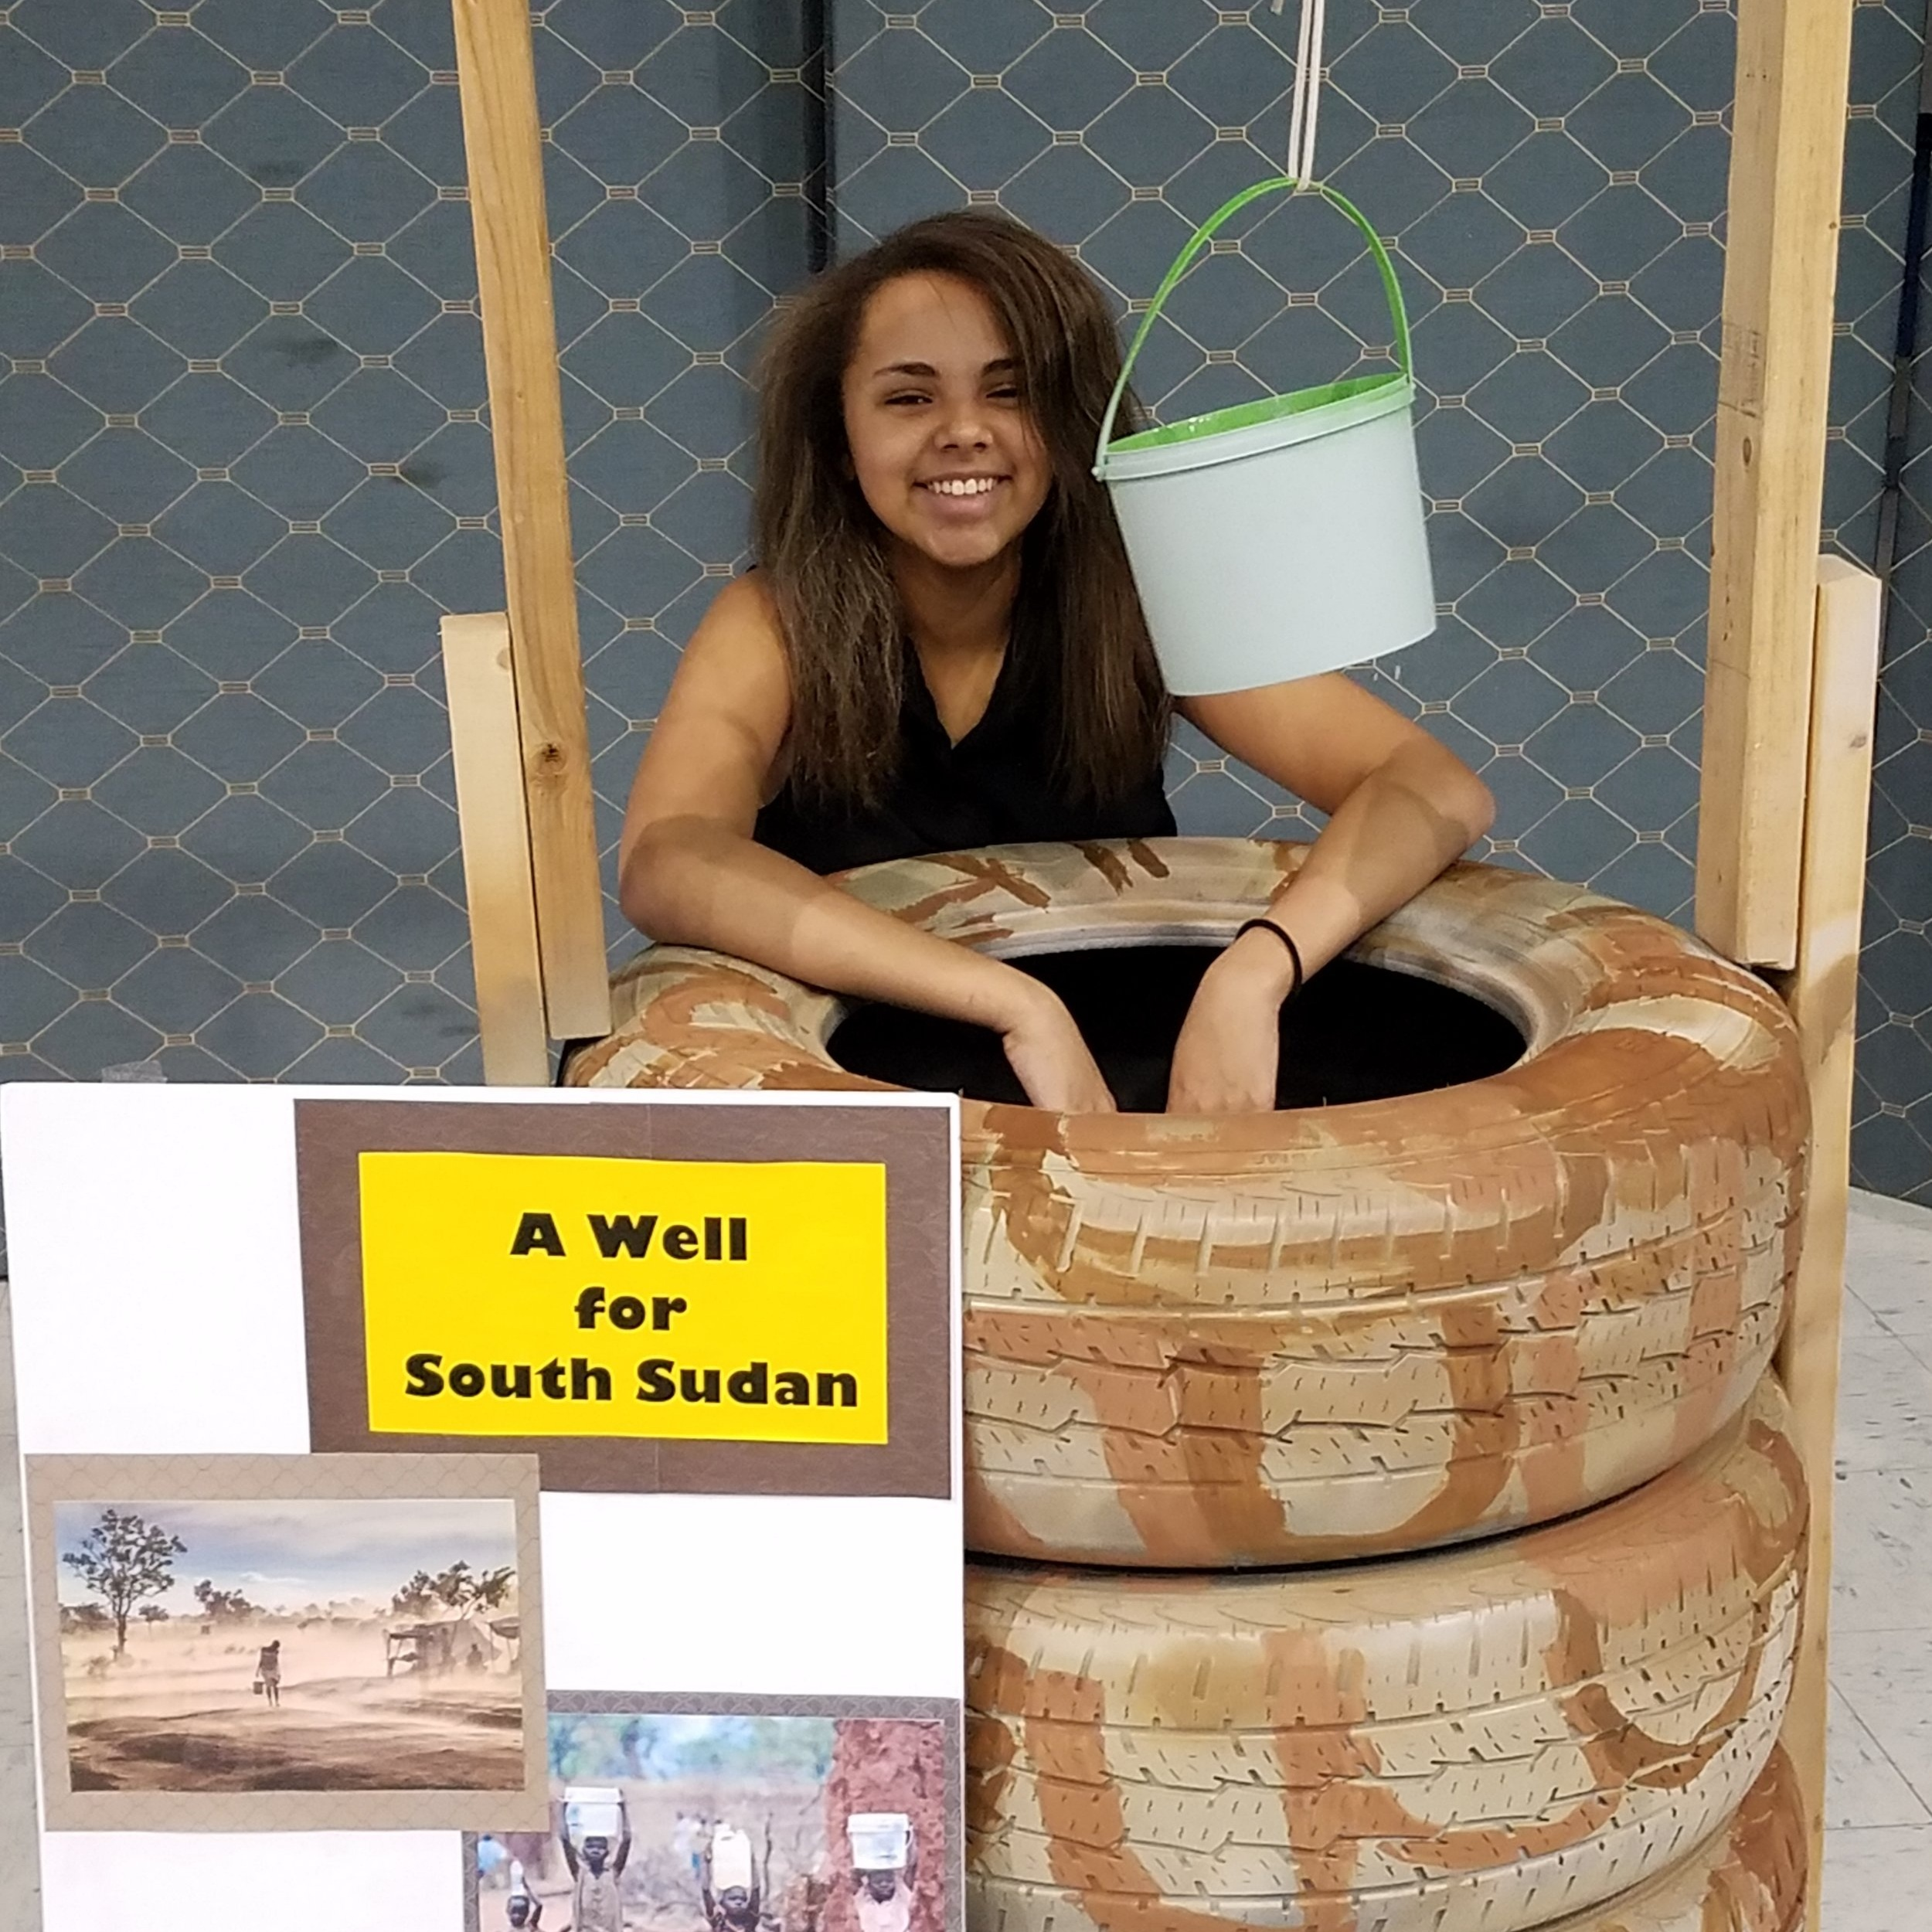 There are always new ways to raise awareness and funds. This water well was created by Michelle's son to collect change.